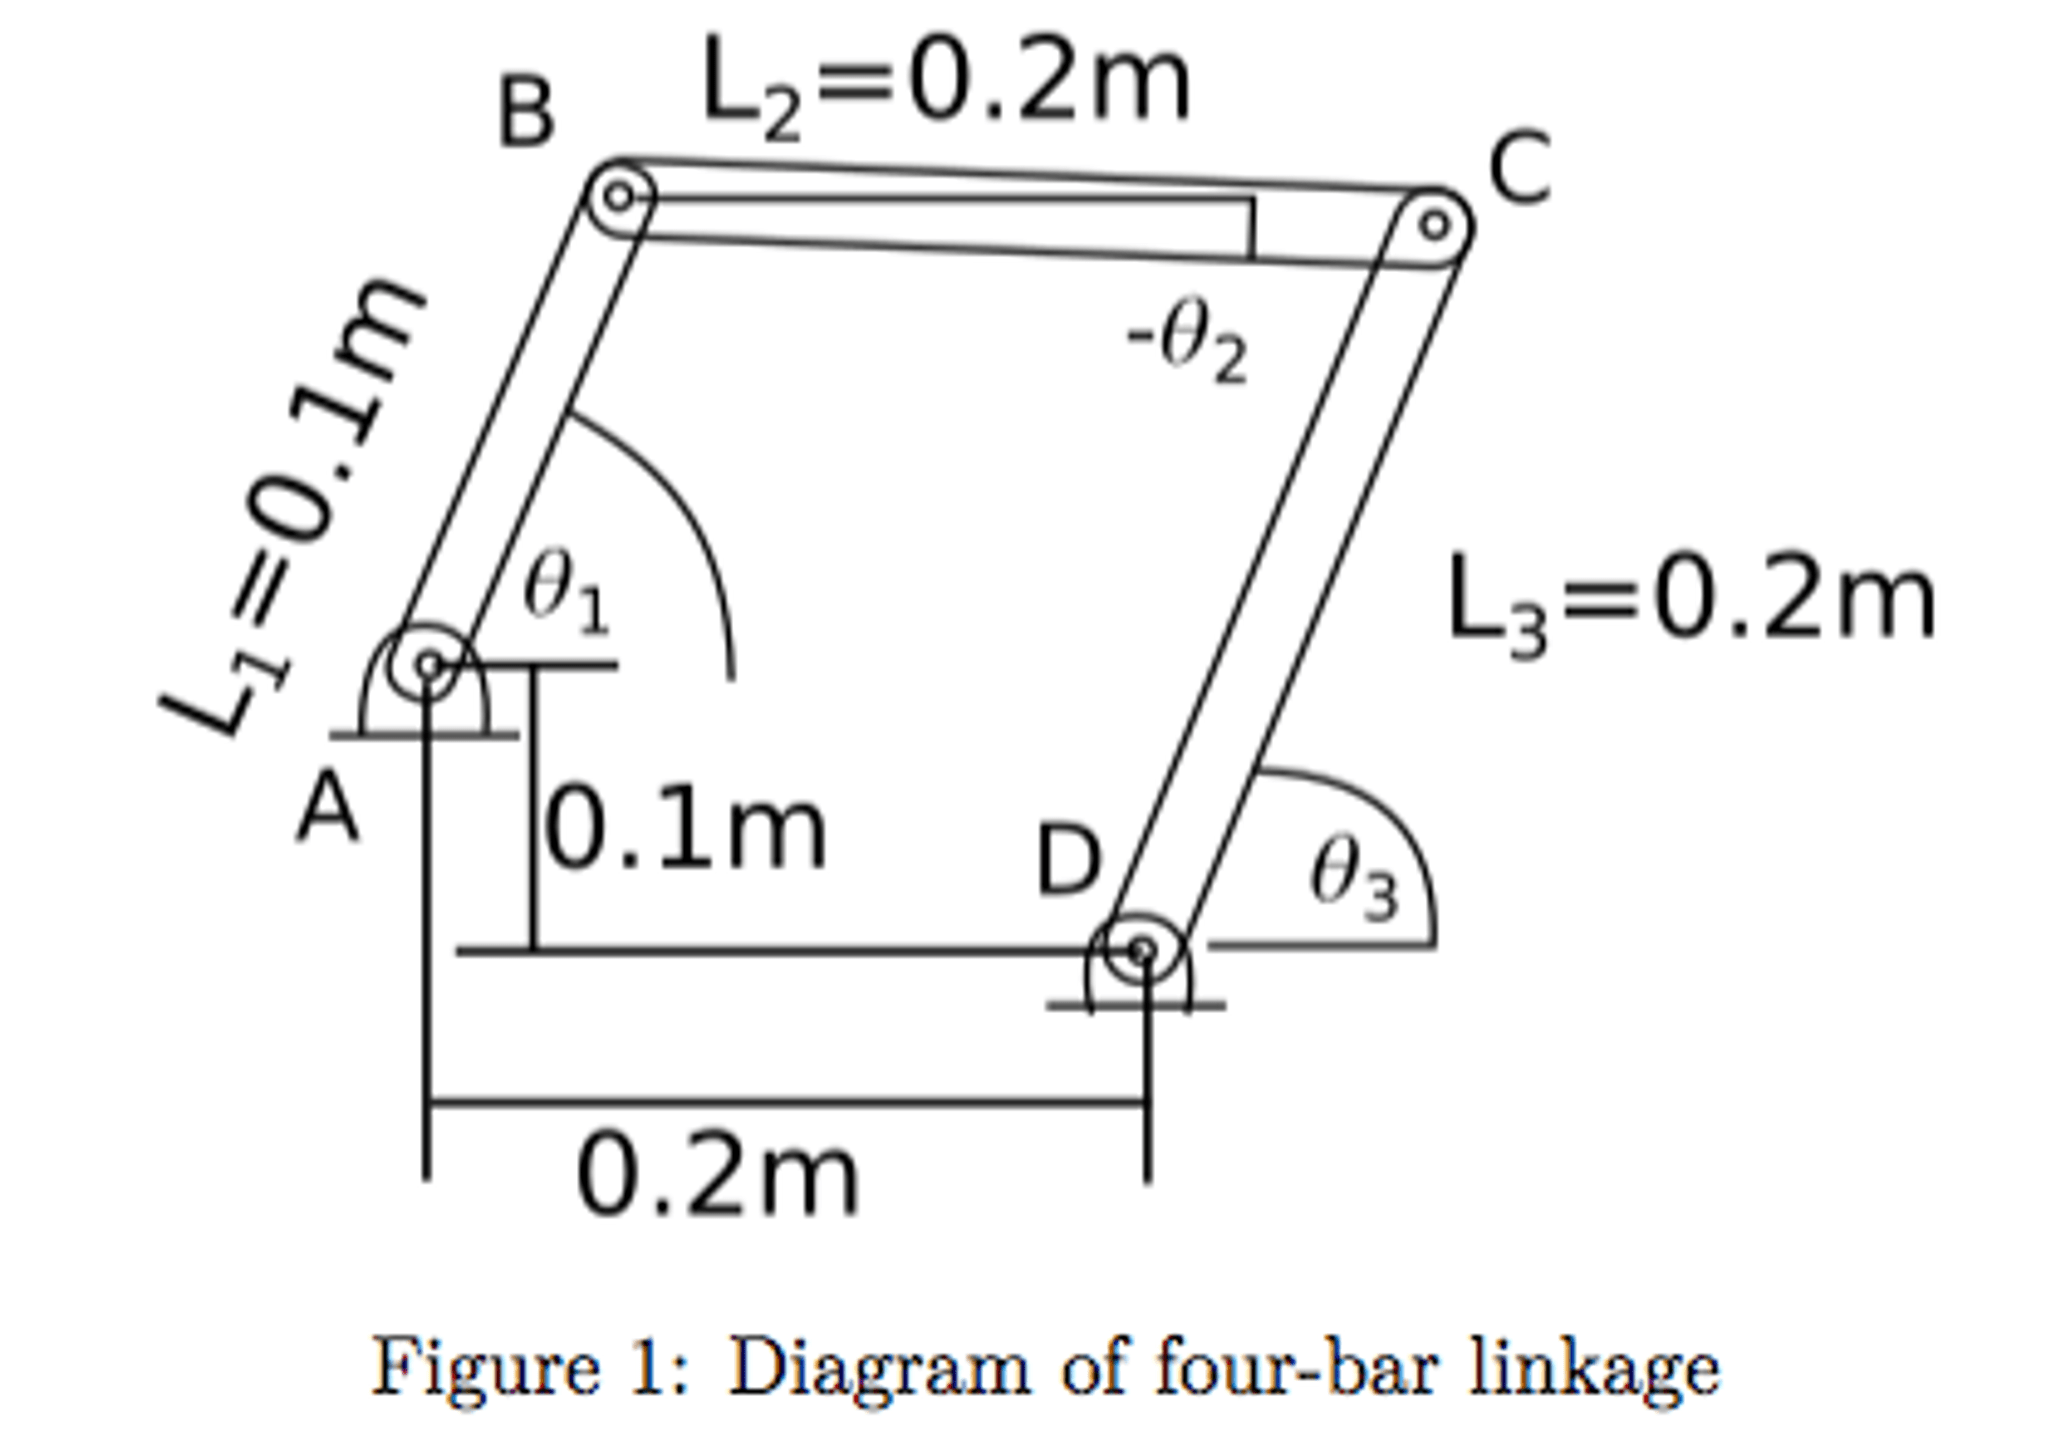 Solved The Diagram In Figure 1 Shows A 4 Bar Linkage Syst